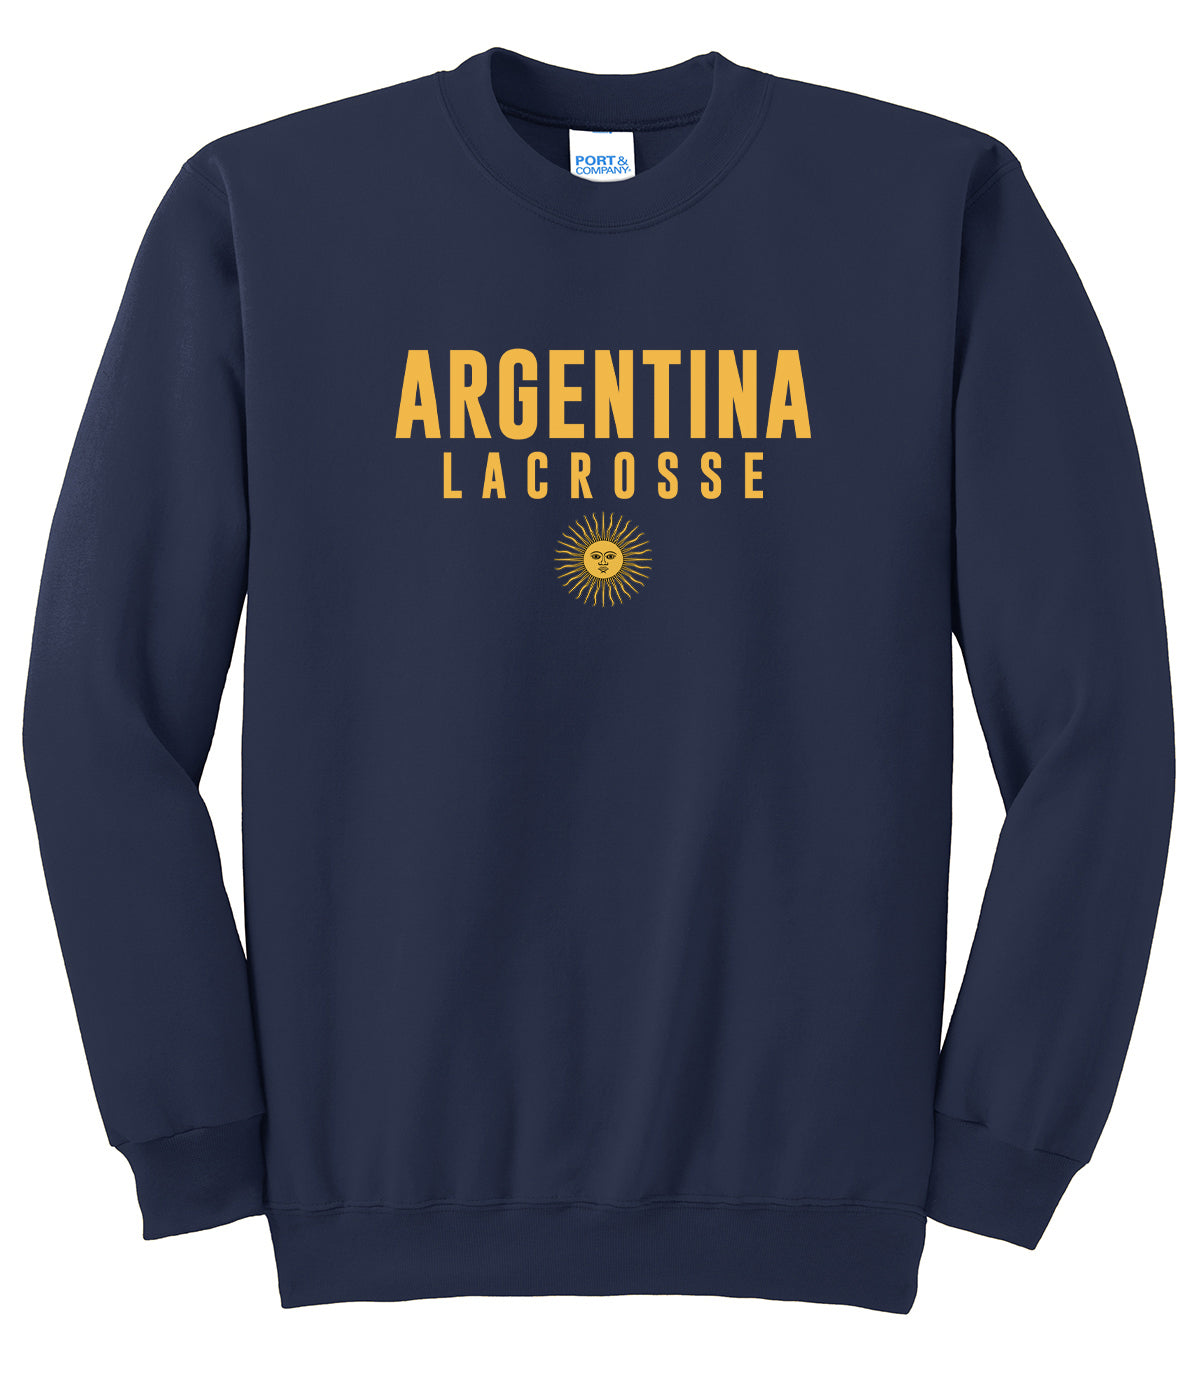 e219f89e68cd7 Argentina Lacrosse Crew Neck Sweater – Blatant Team Store